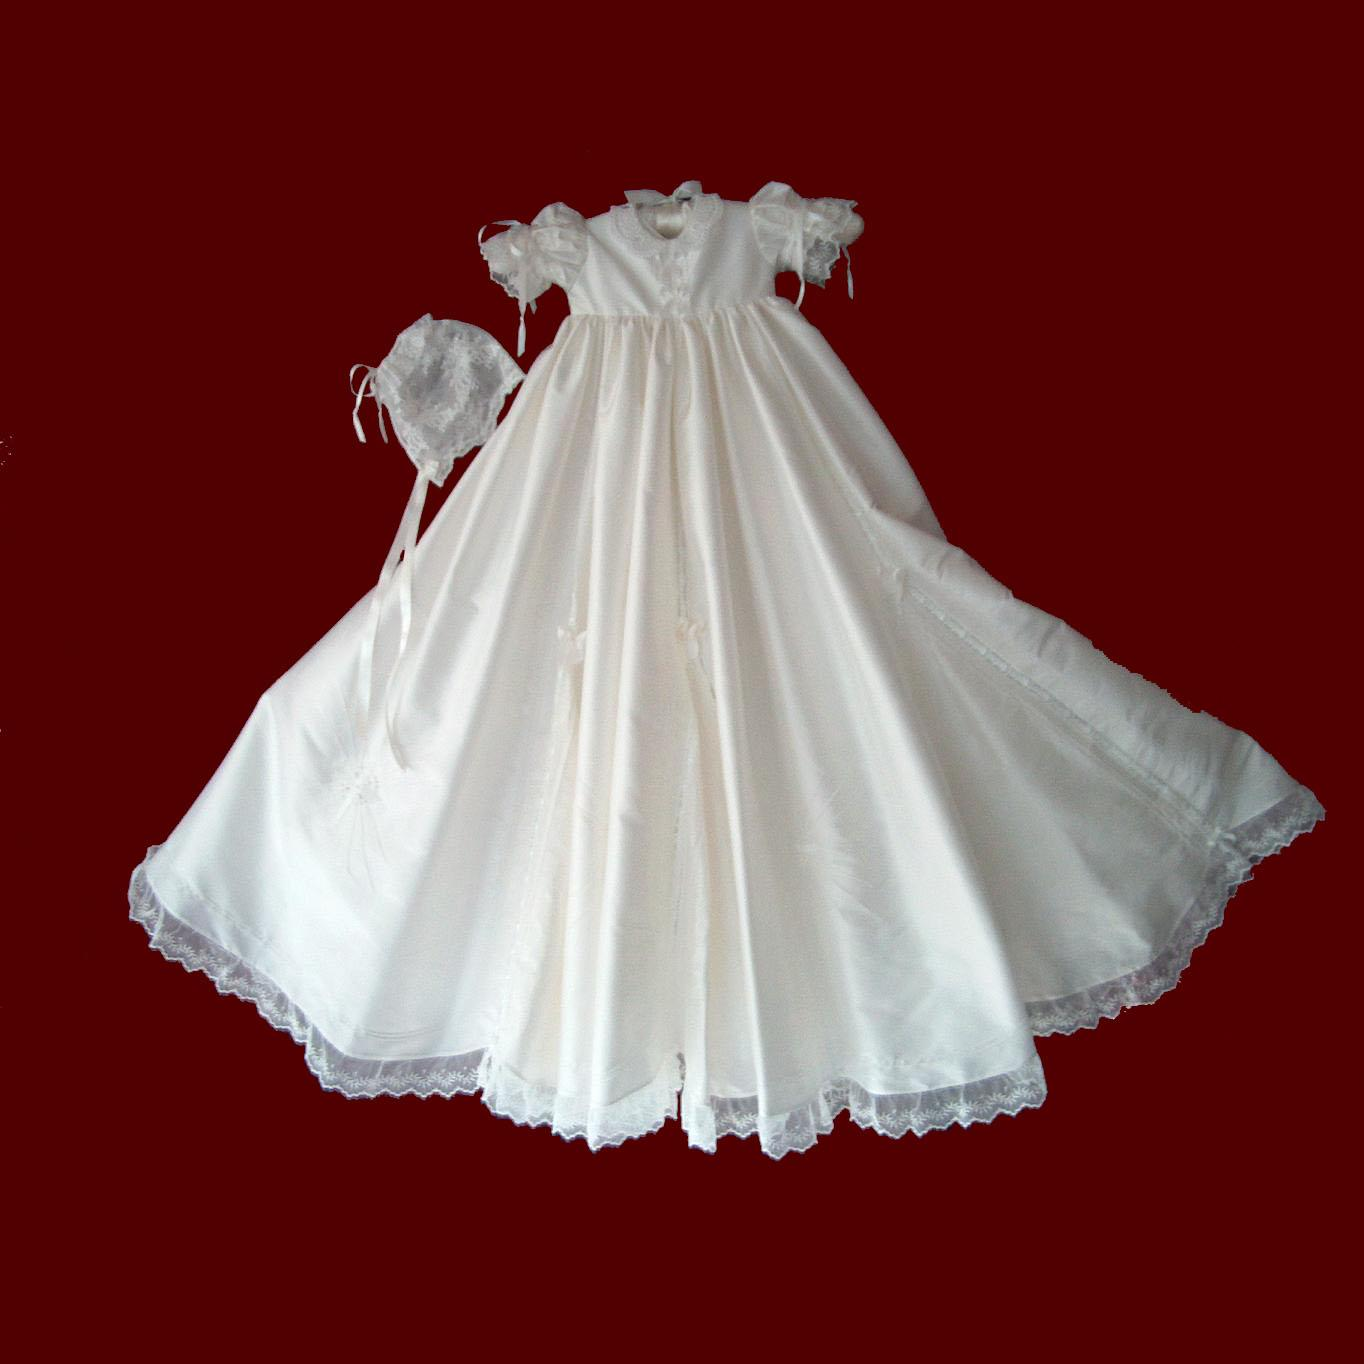 Christening Gowns From Wedding Dresses: Girls Silk Christening Gown With Gores & Godets